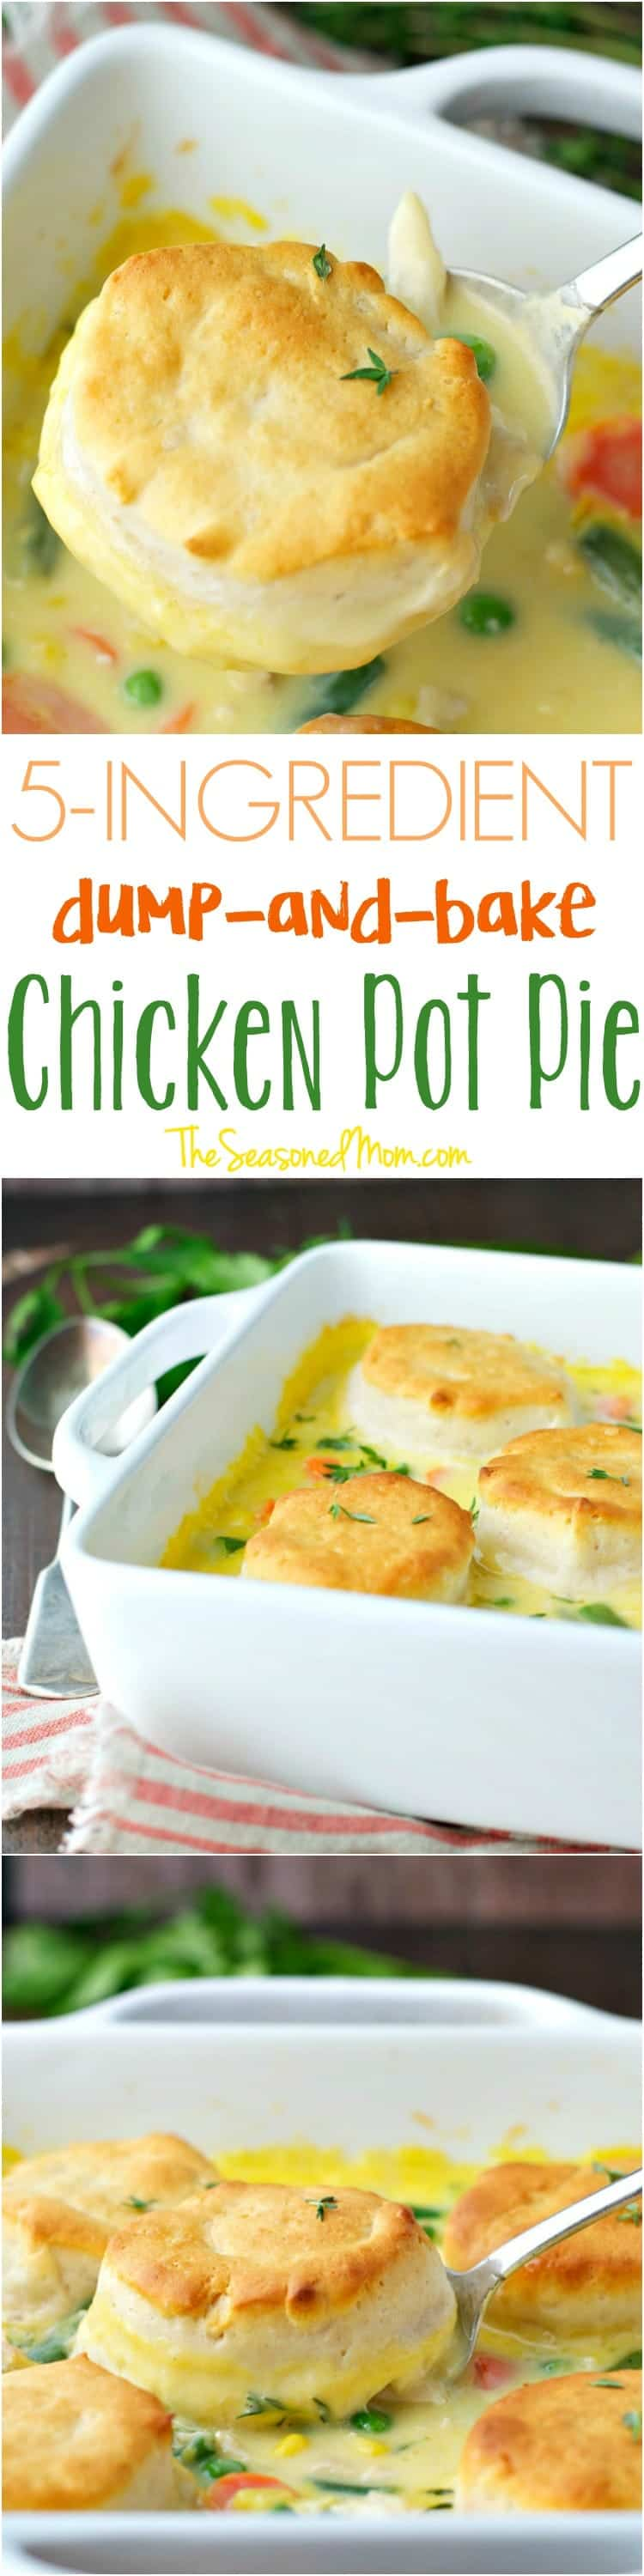 You only need 5 ingredients and 5 minutes to make this Dump-and-Bake Chicken Pot Pie Recipe!